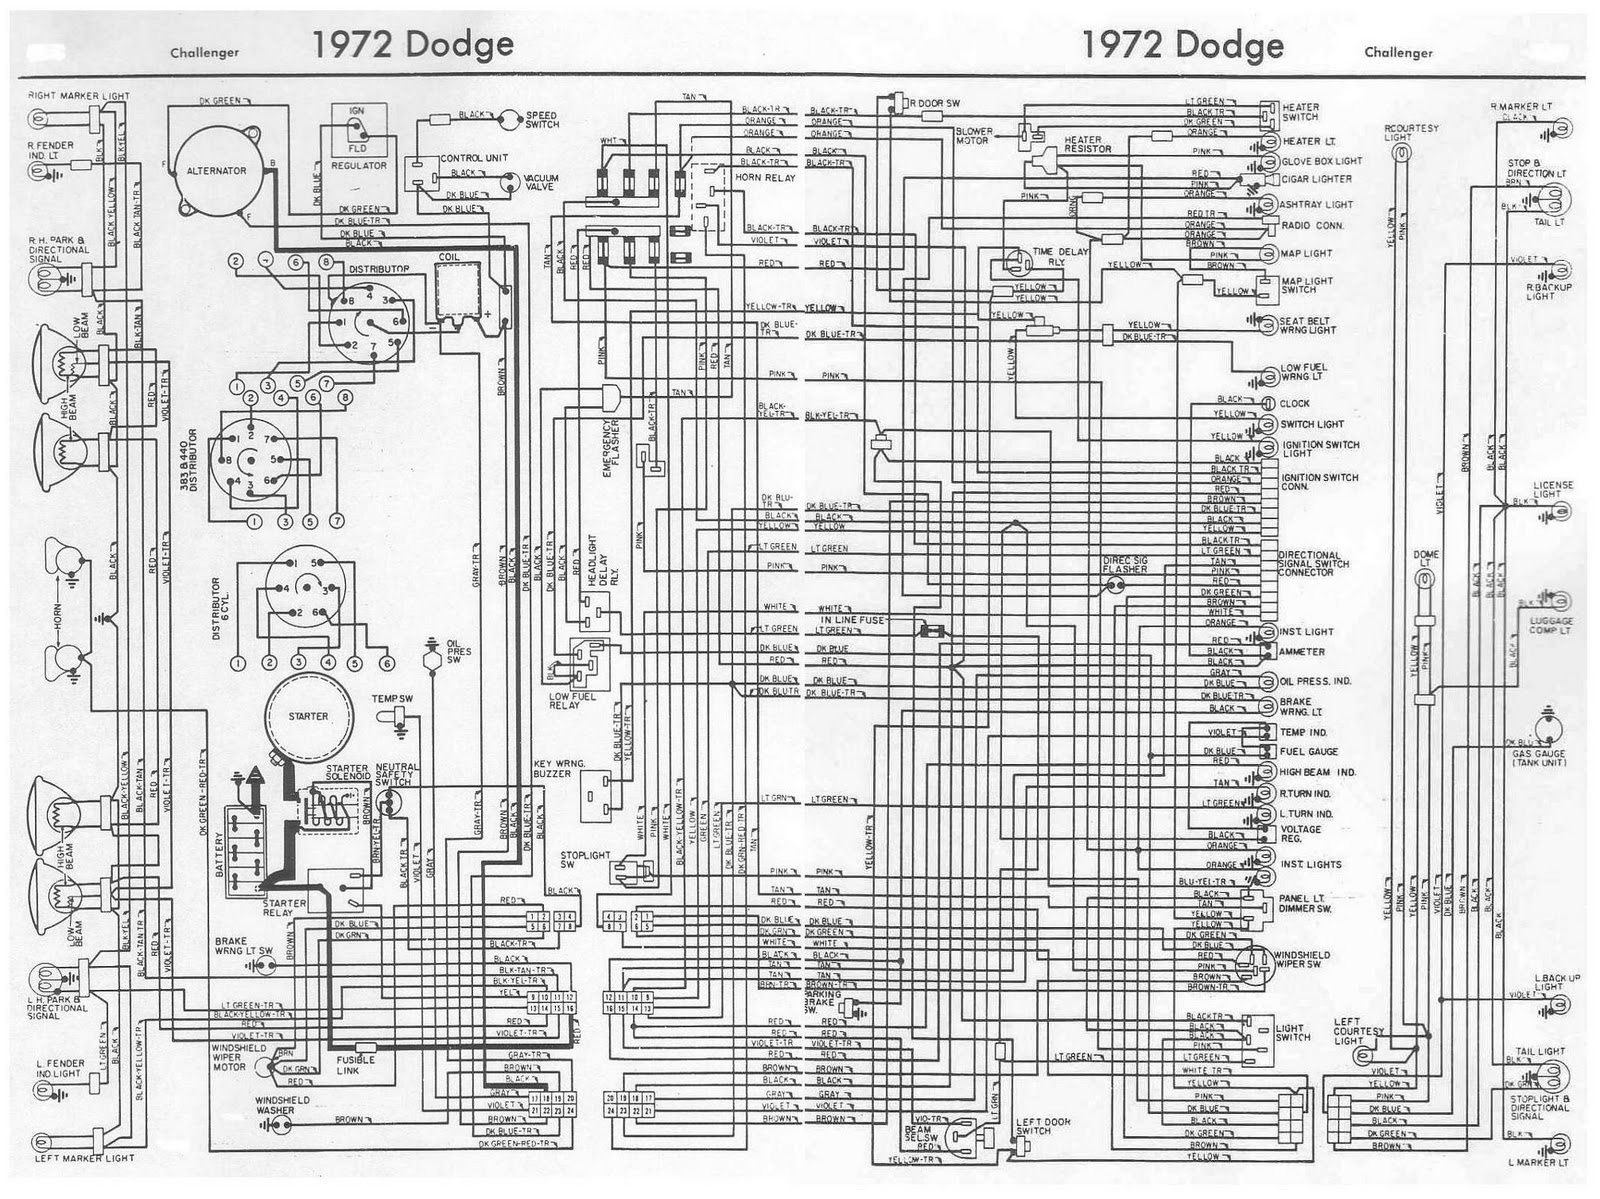 1972 Trans Am Wiring Diagram Library Dodge 2500 Alternator 1970 Challenger Detailed Schematics Ram 1500 For